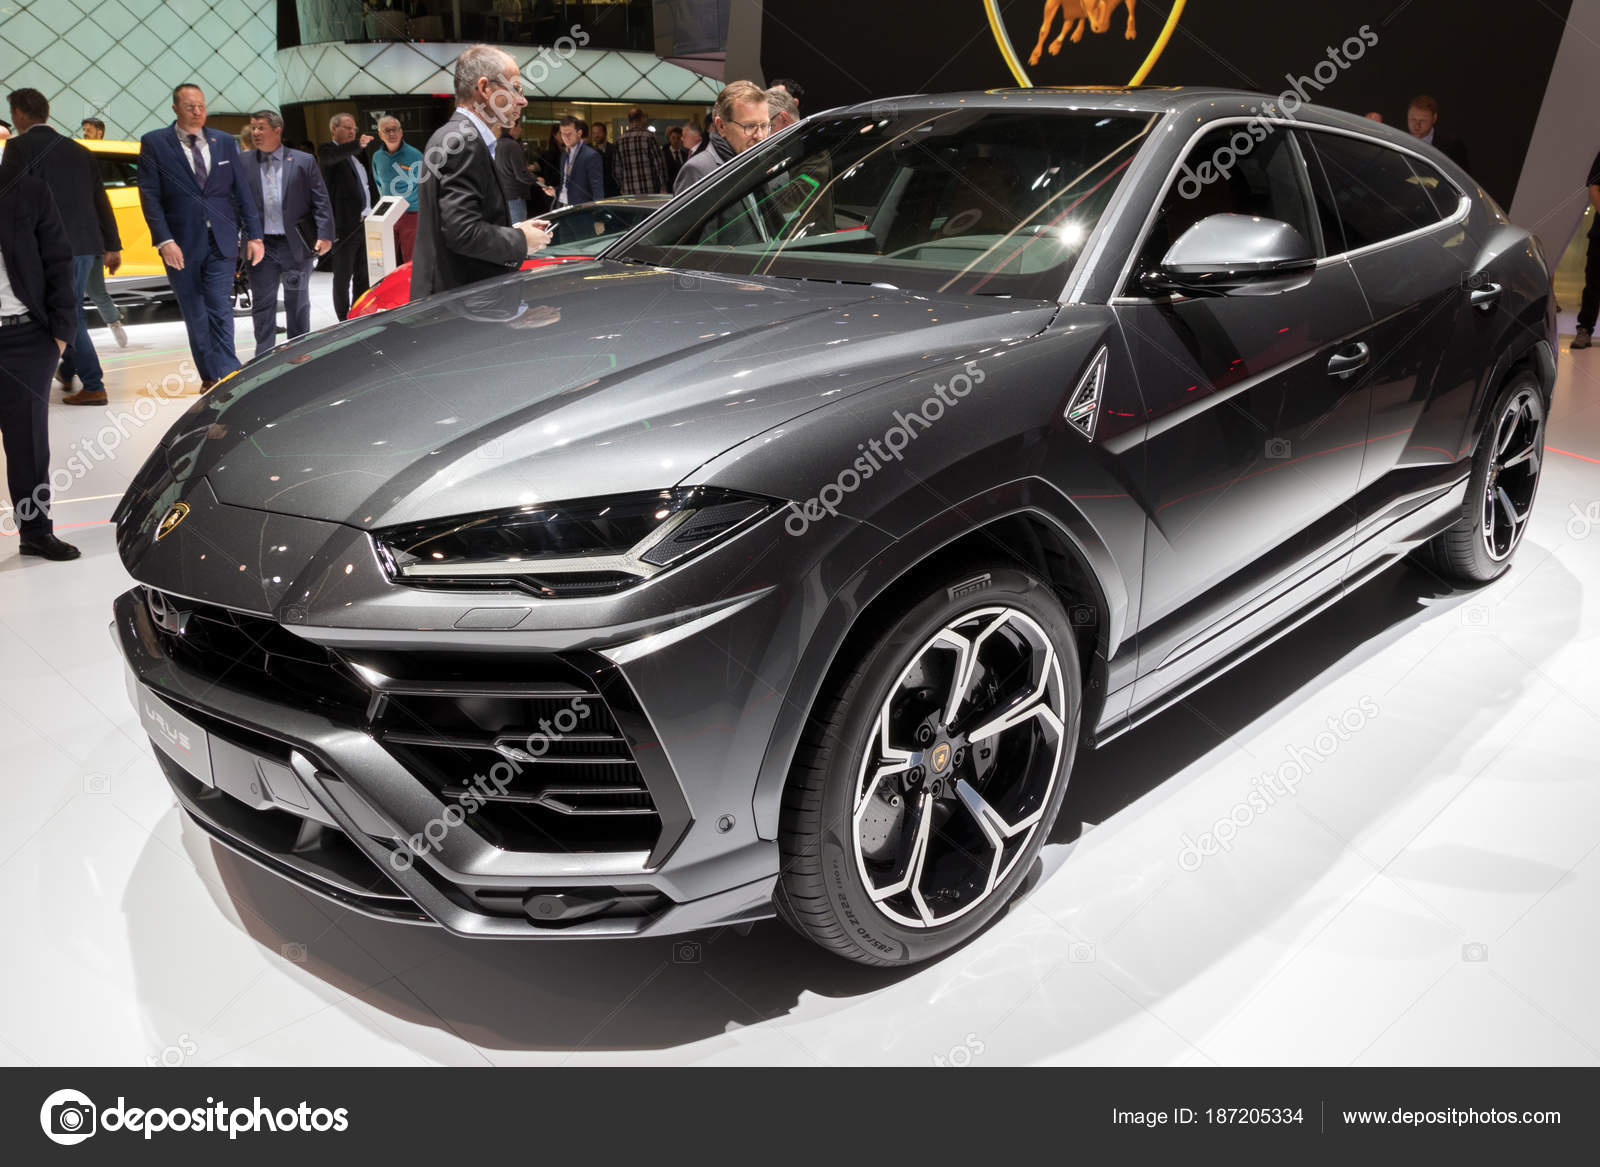 nieuwe lamborghini urus suv auto redactionele stockfoto foto vdw 187205334. Black Bedroom Furniture Sets. Home Design Ideas